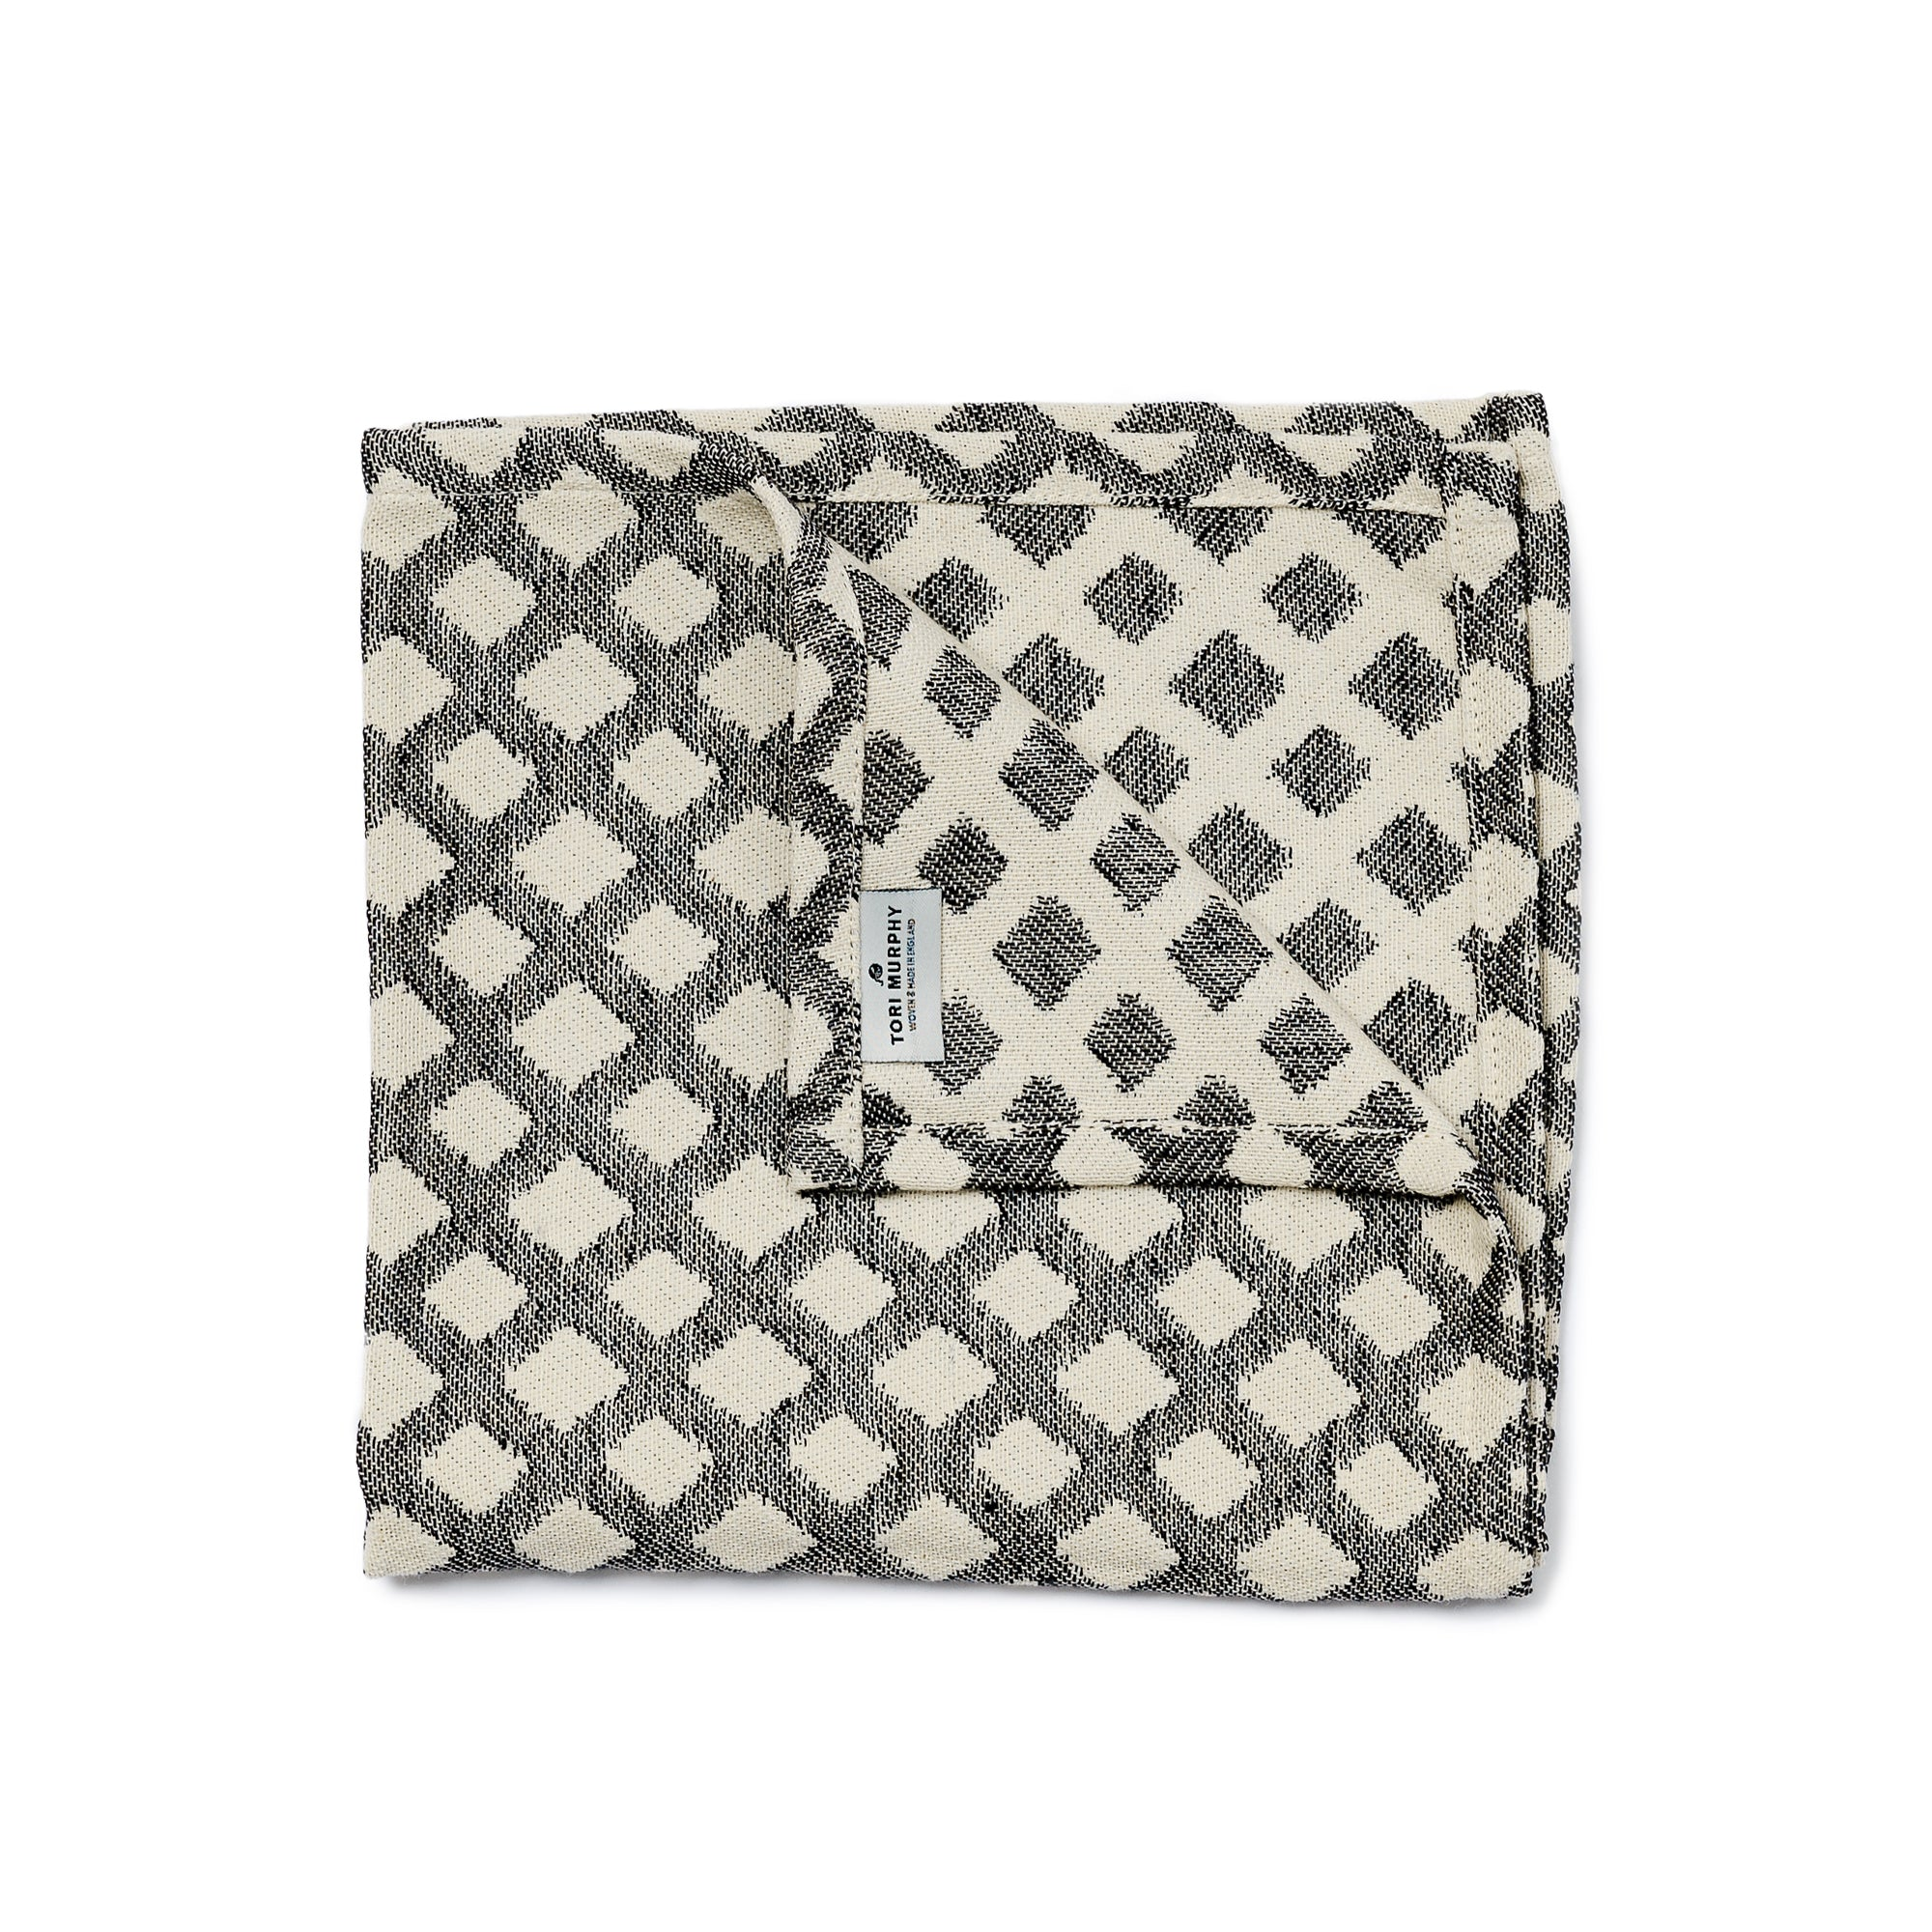 Cadogan Check Single Napkin Black